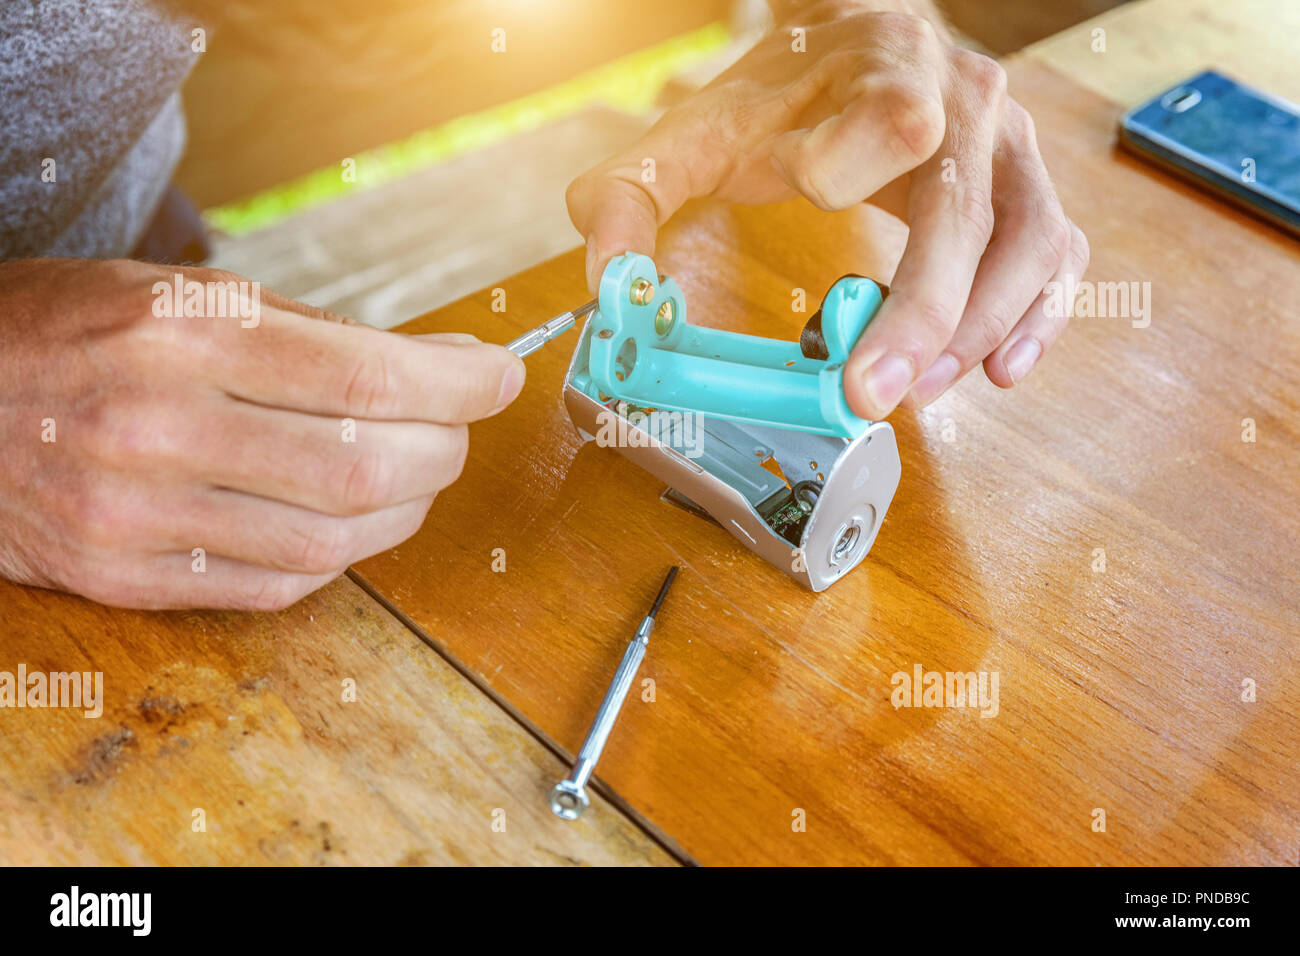 Man hands fixing modern vaporizer e-cig gadget to vape e-liquid. Maintenance of electronic equipment mech mod vaping device. Vaper device repair servi - Stock Image